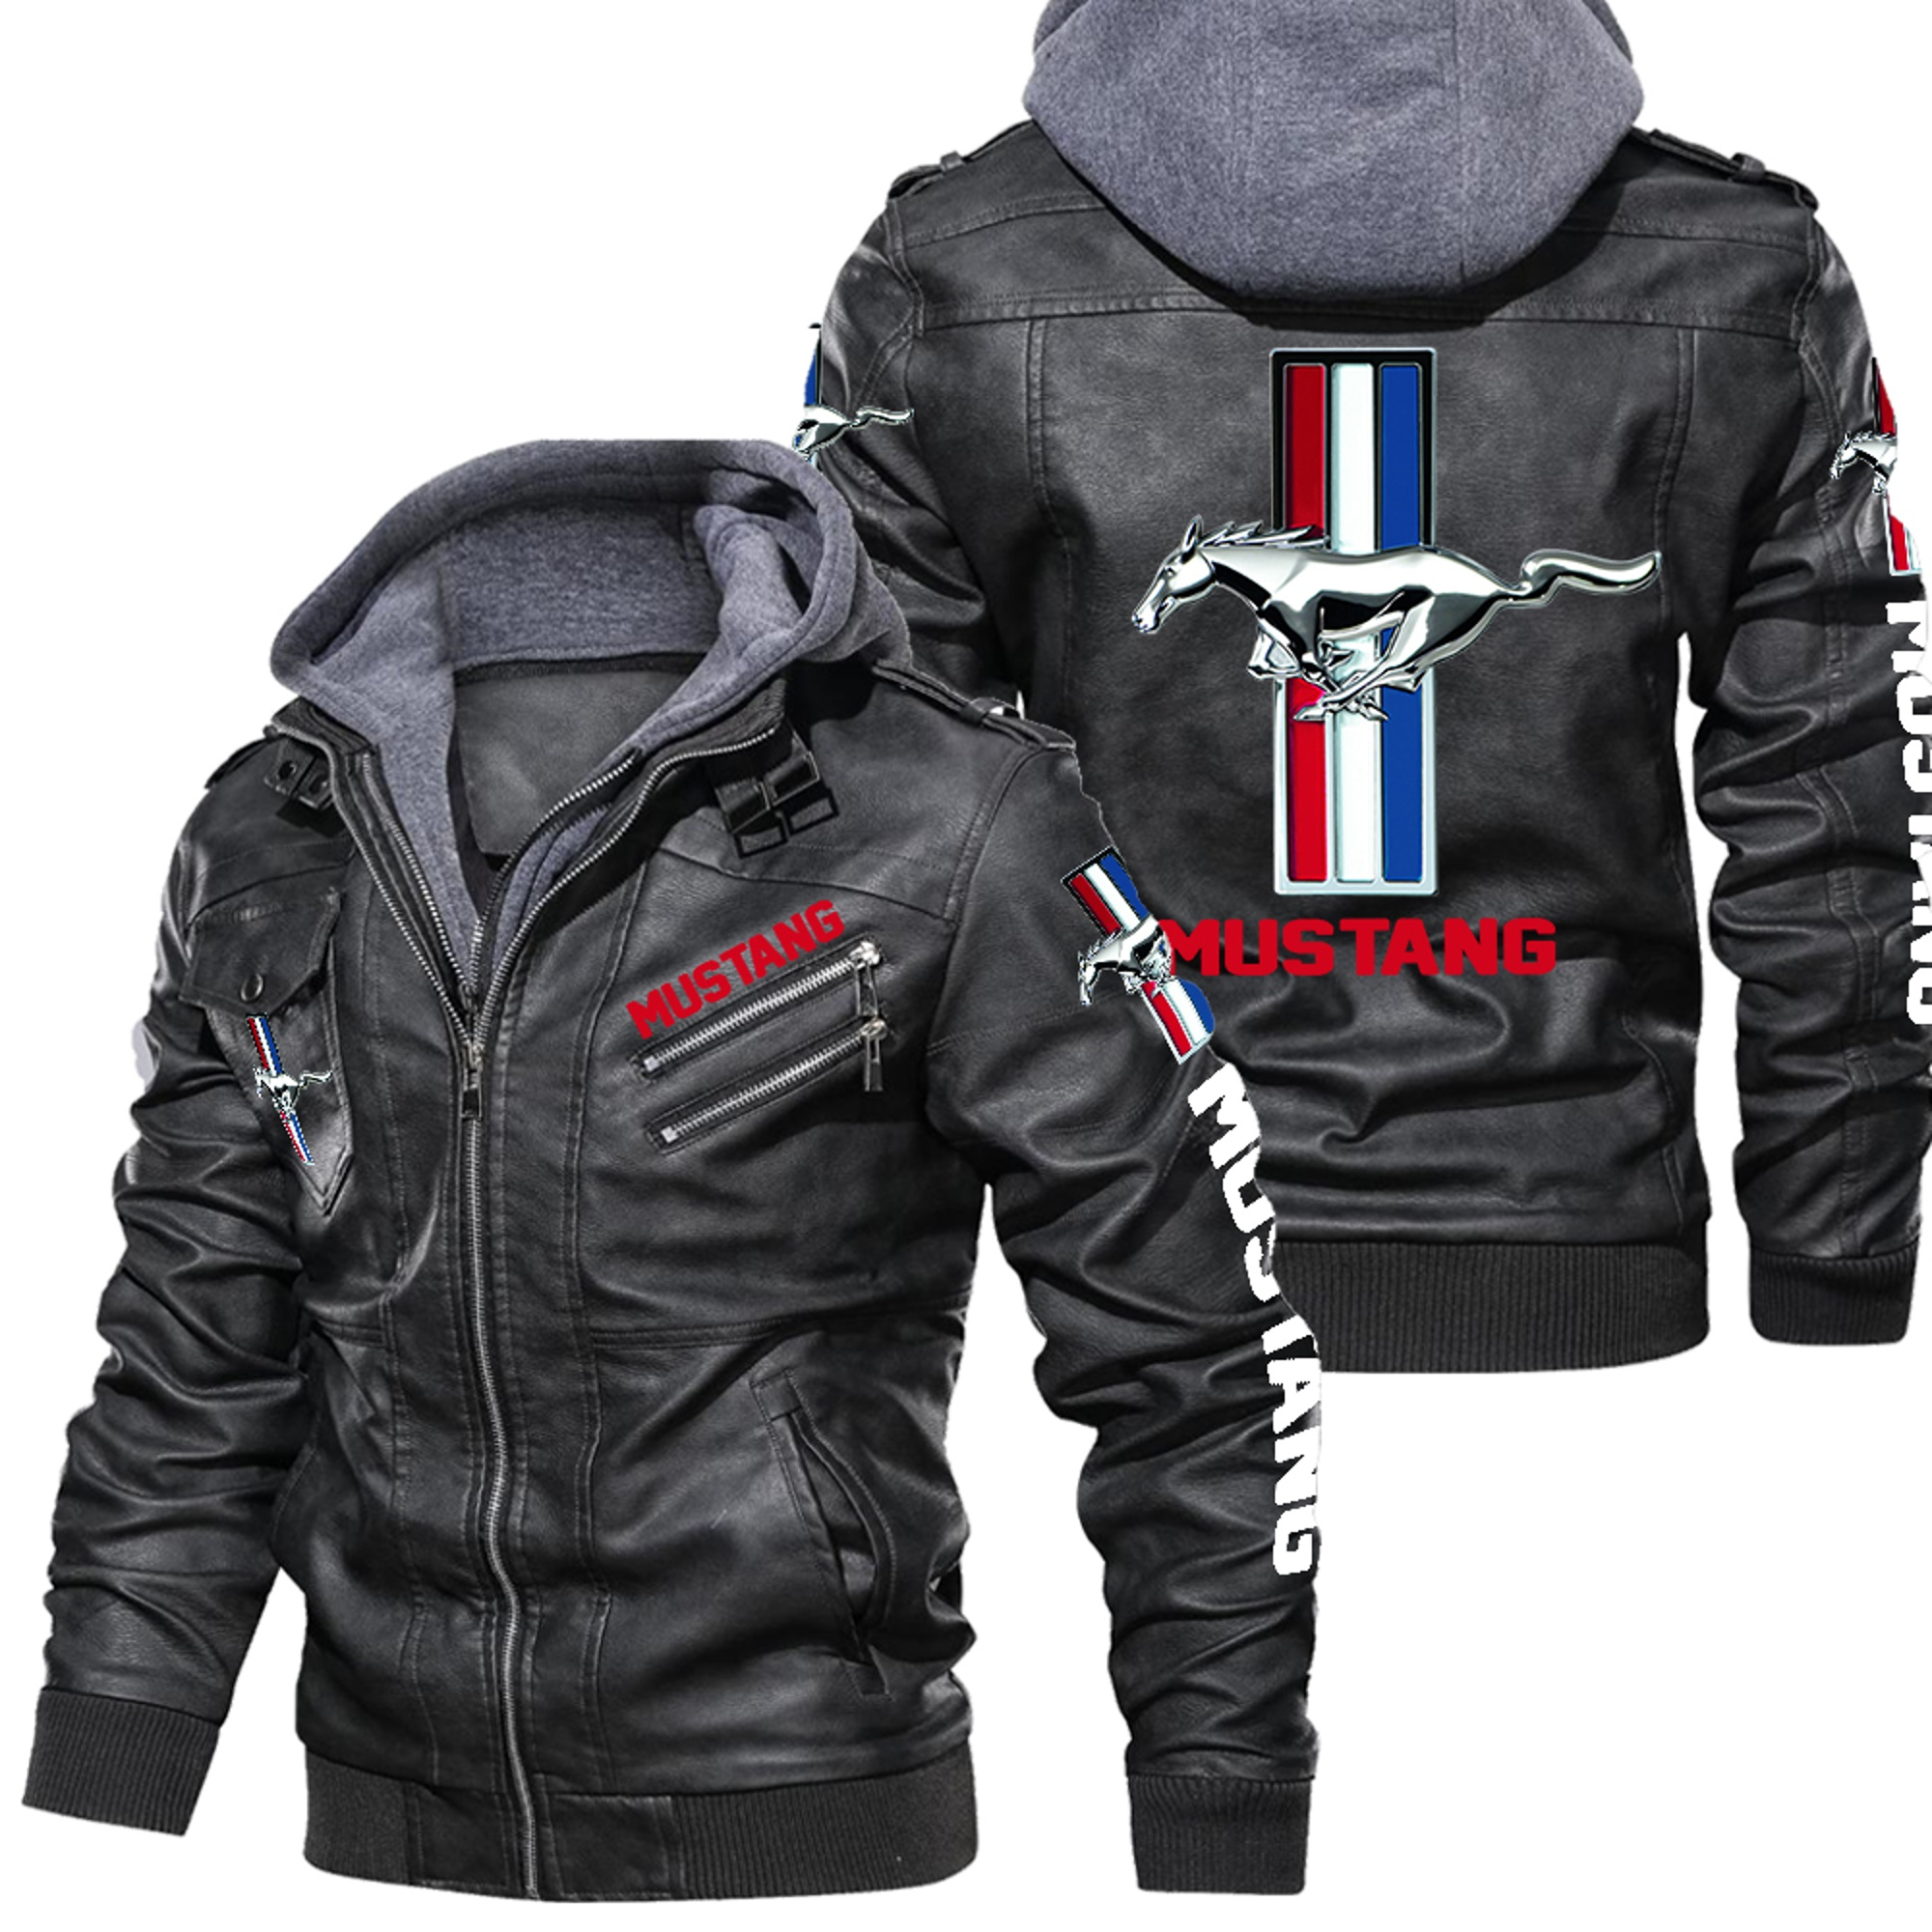 Mustang Black Leather Jacket,Warm Jacket, NFL Winter Outer Wear Gift (Copy)